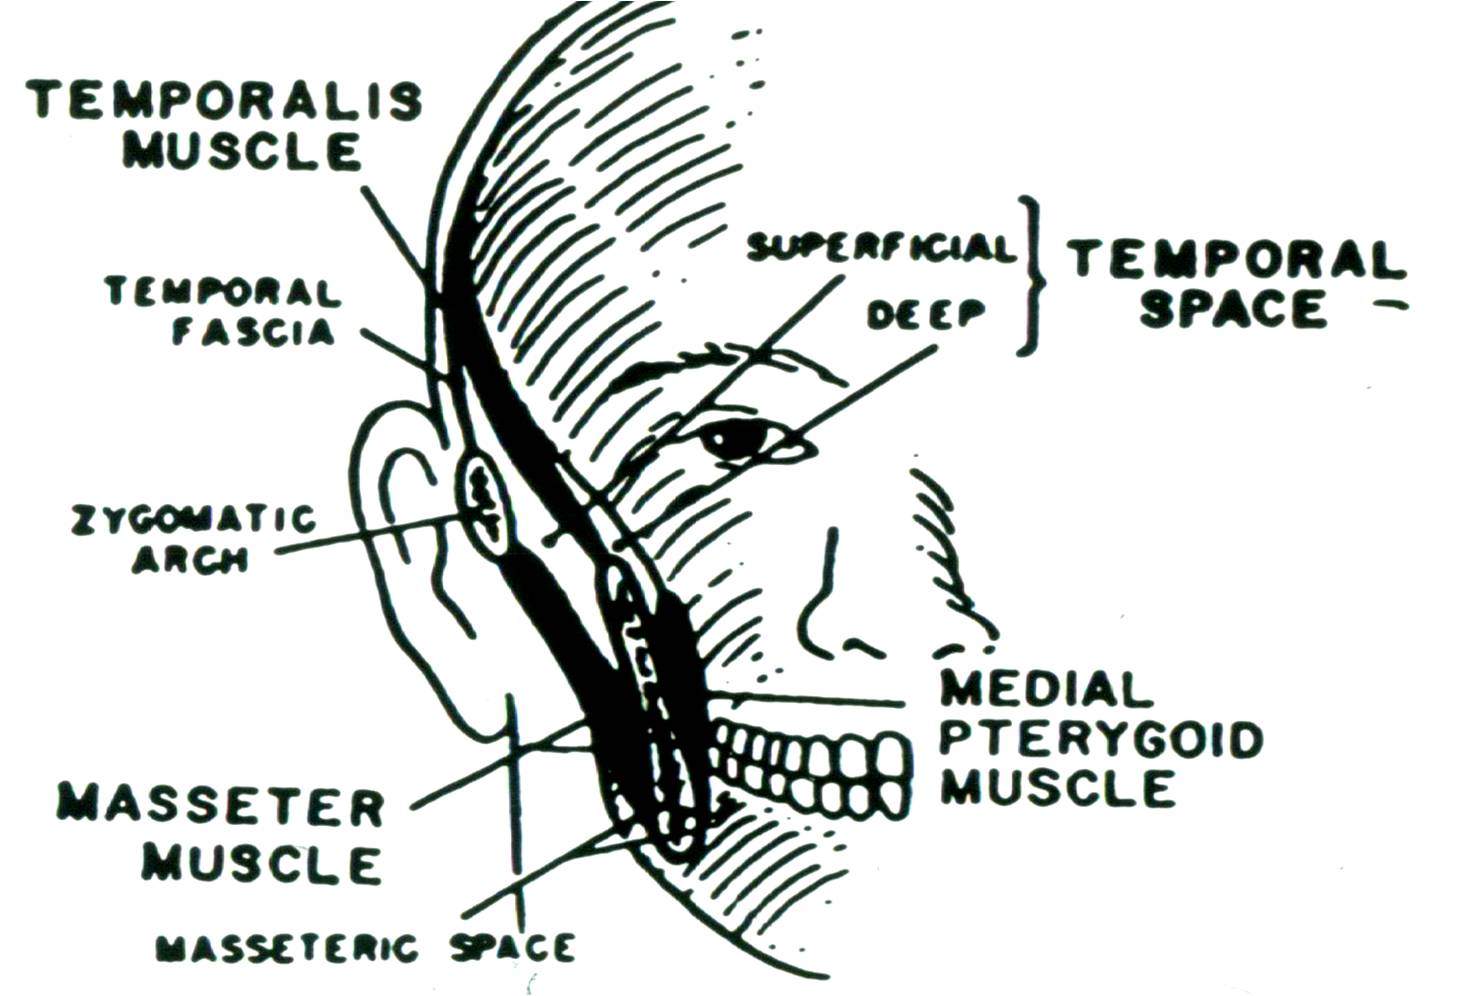 hight resolution of temporal space infections the temporal space is divided by the temporalis muscle into a superficial component enclosed by the masseter muscle and a deep